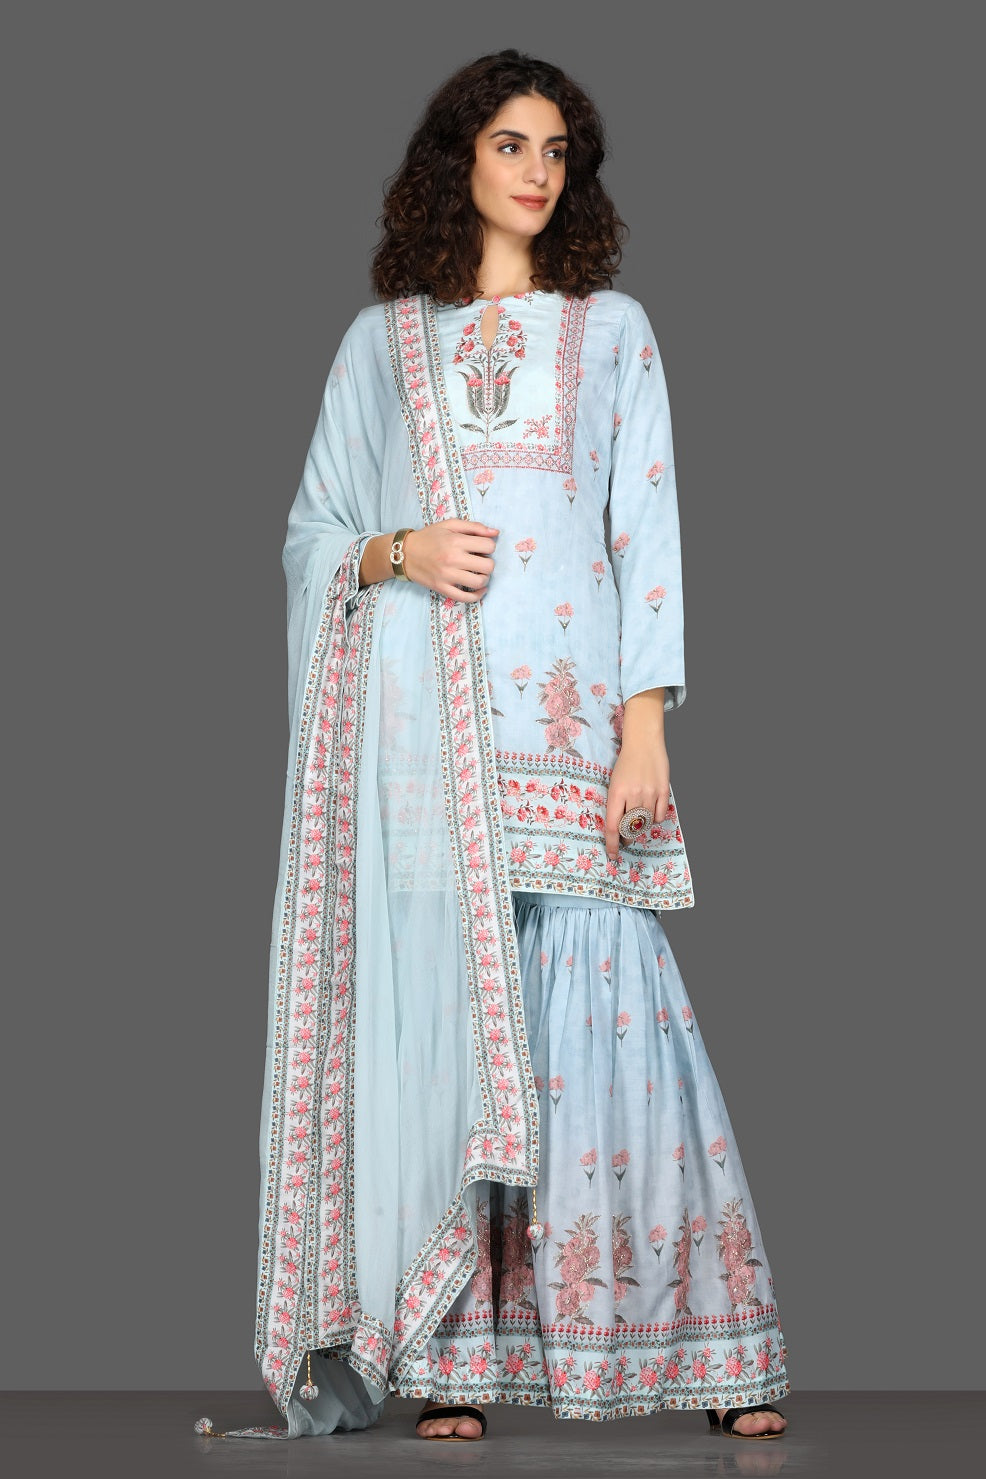 Shop beautiful powder blue floral gharara suit online in USA and matching dupatta. Dazzle on weddings and special occasions with exquisite Indian designer dresses, sharara suits, Anarkali suits from Pure Elegance Indian fashion store in USA.-full view